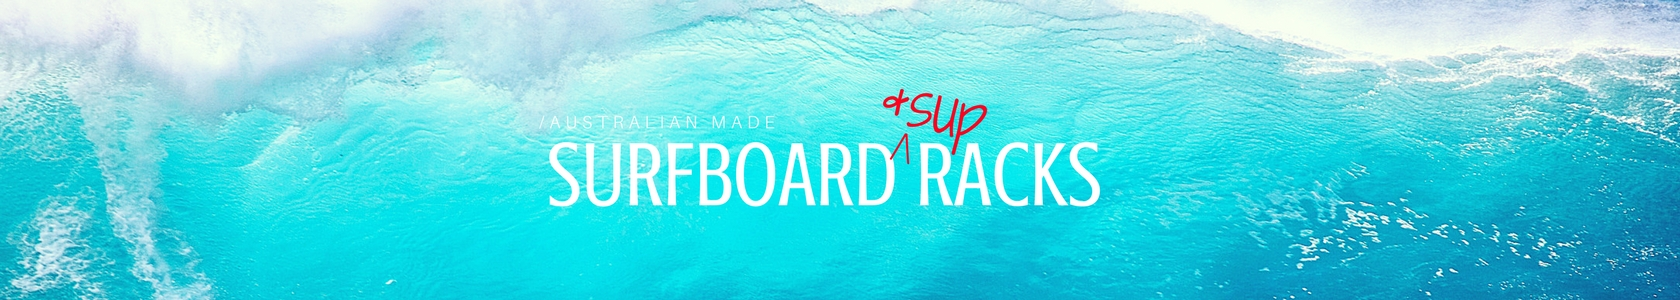 Website header SURF & SUP RACKS